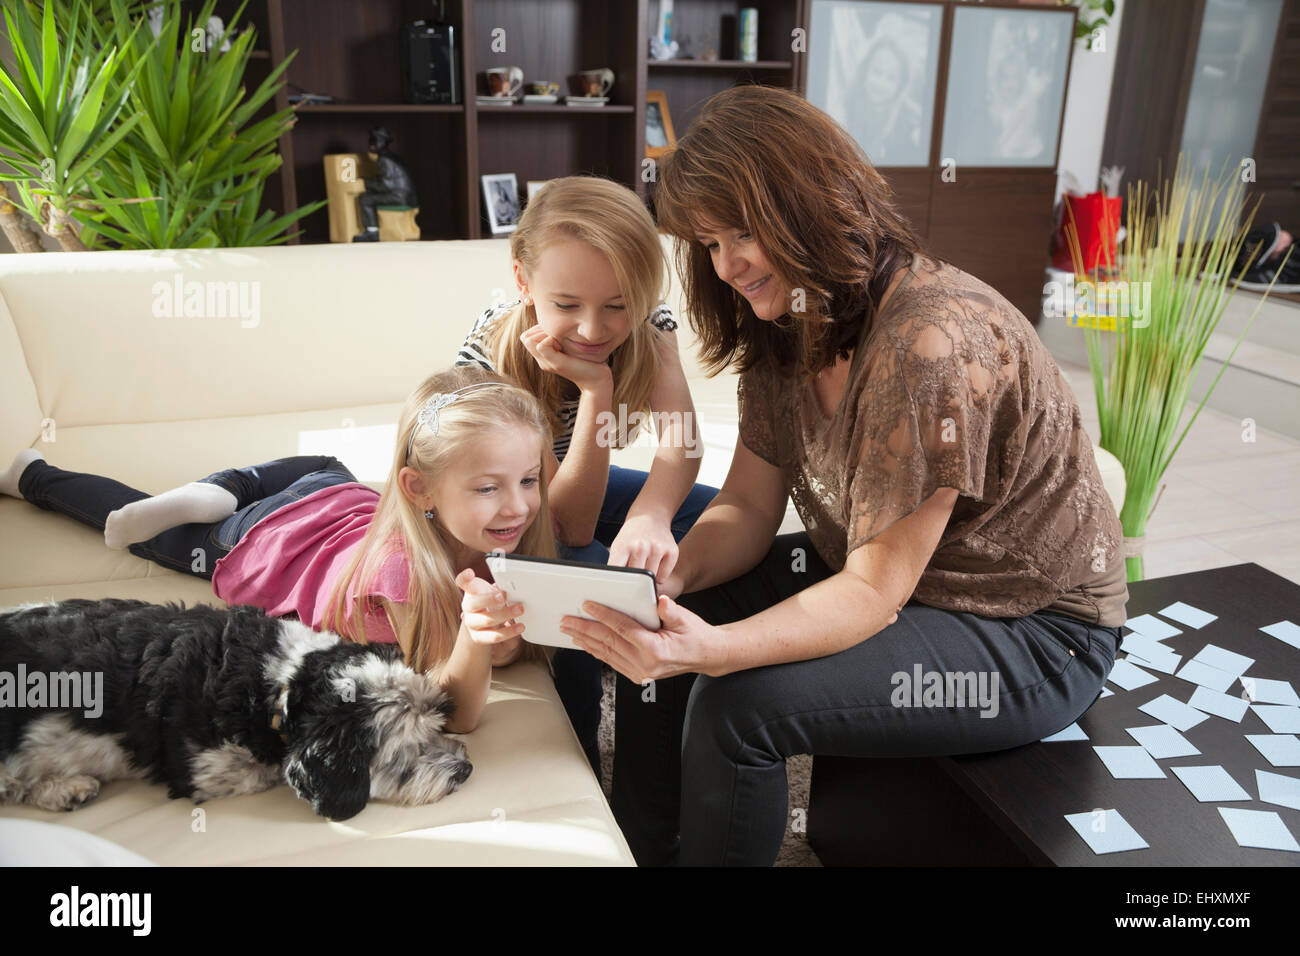 Woman with her two daughters playing games on a digital tablet in a living room, Bavaria, Germany - Stock Image